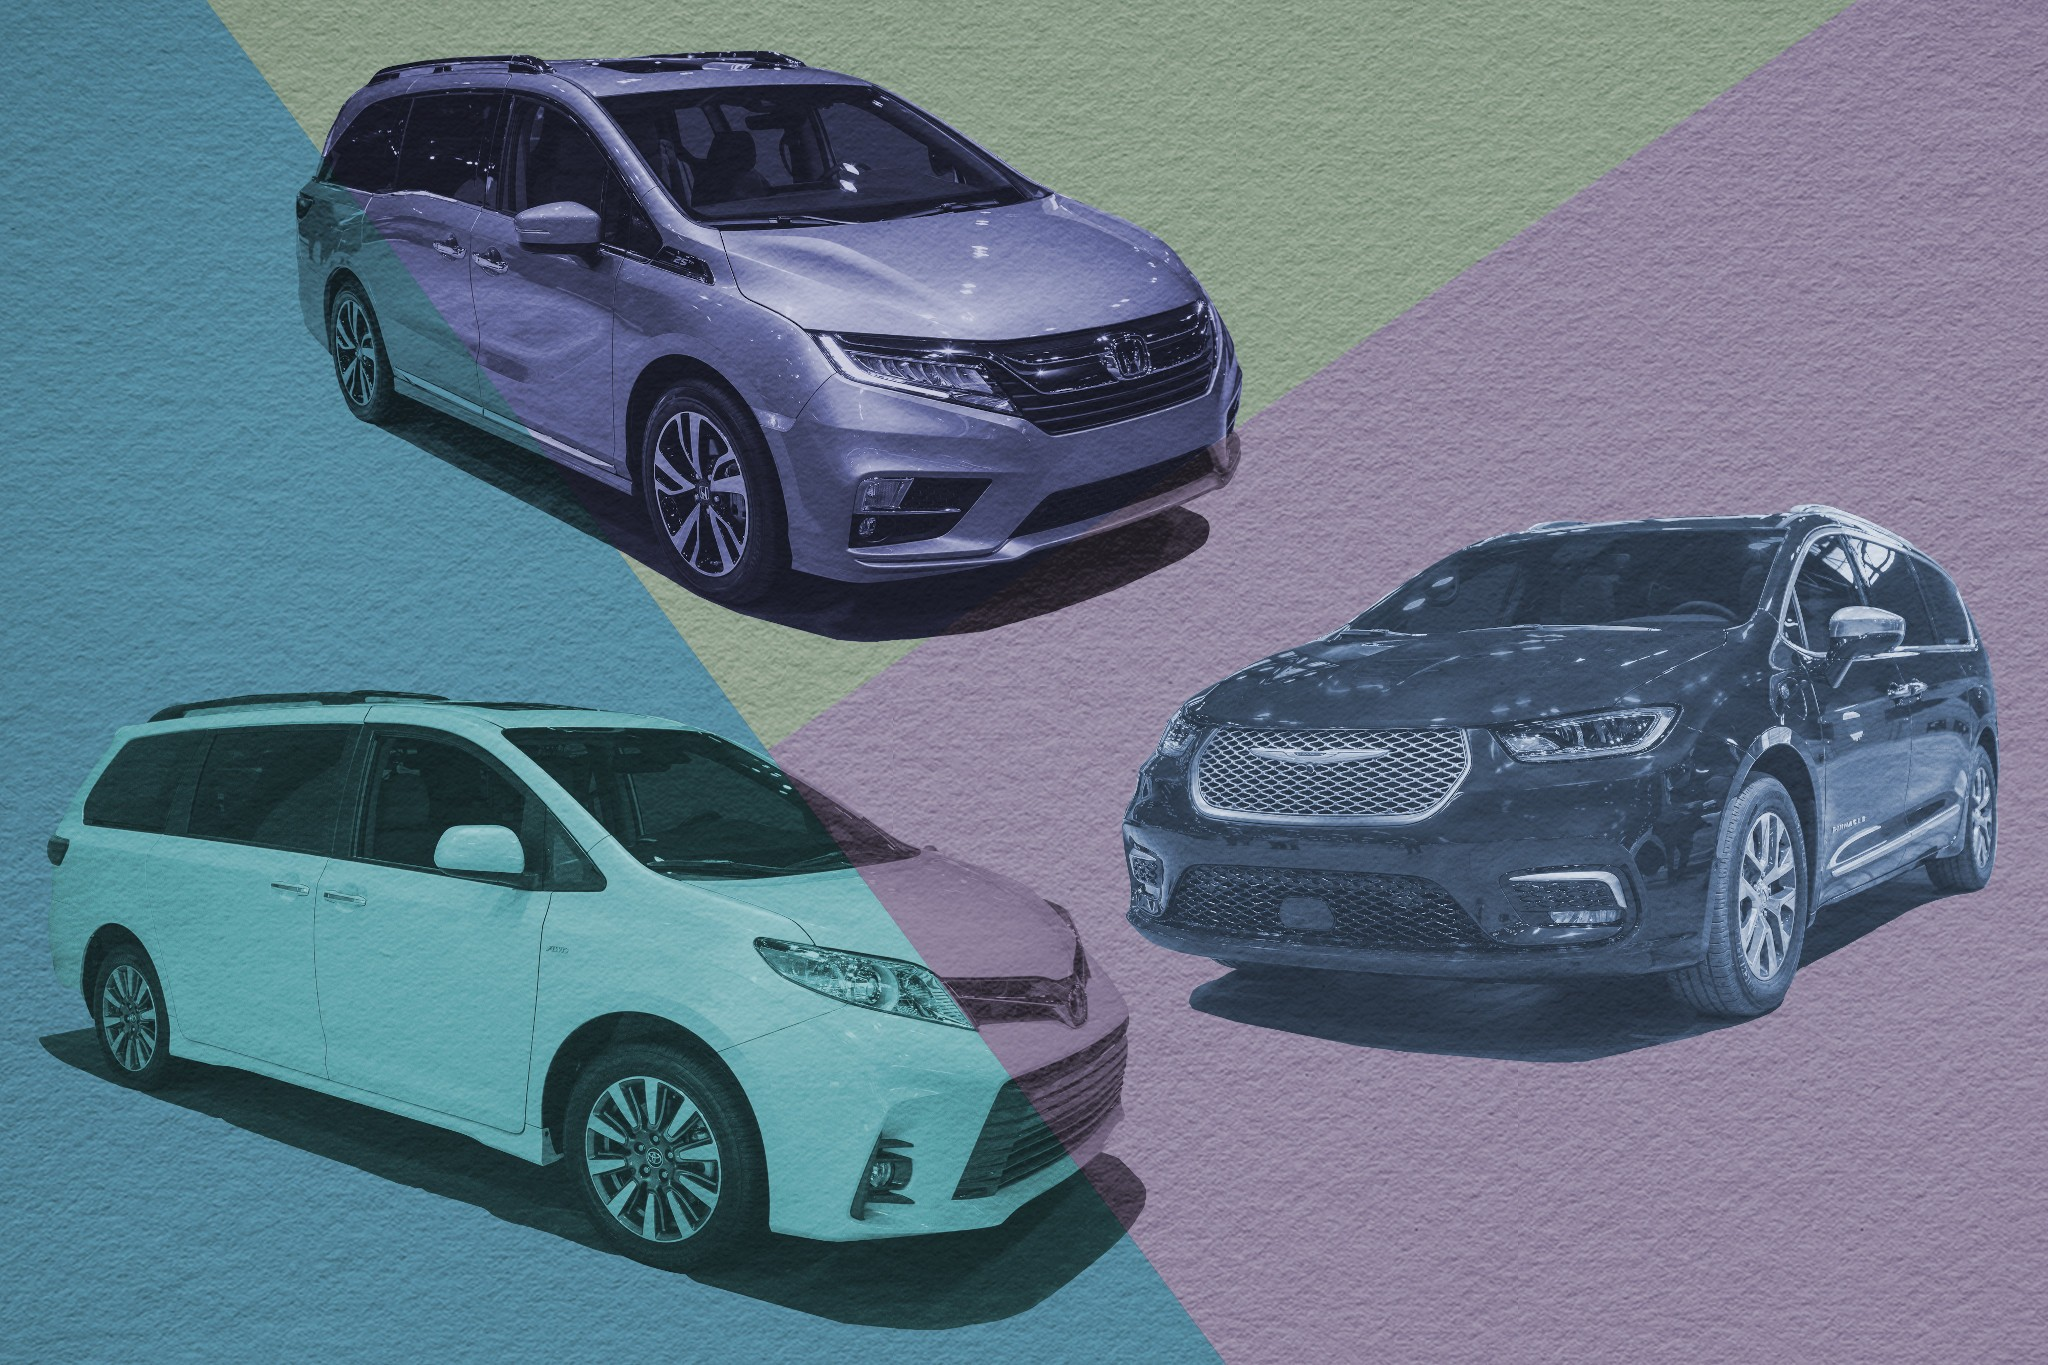 Auto Show Face-Off: 2021 Chrysler Pacifica Vs. 2020 Honda Odyssey Vs. 2020 Toyota Sienna